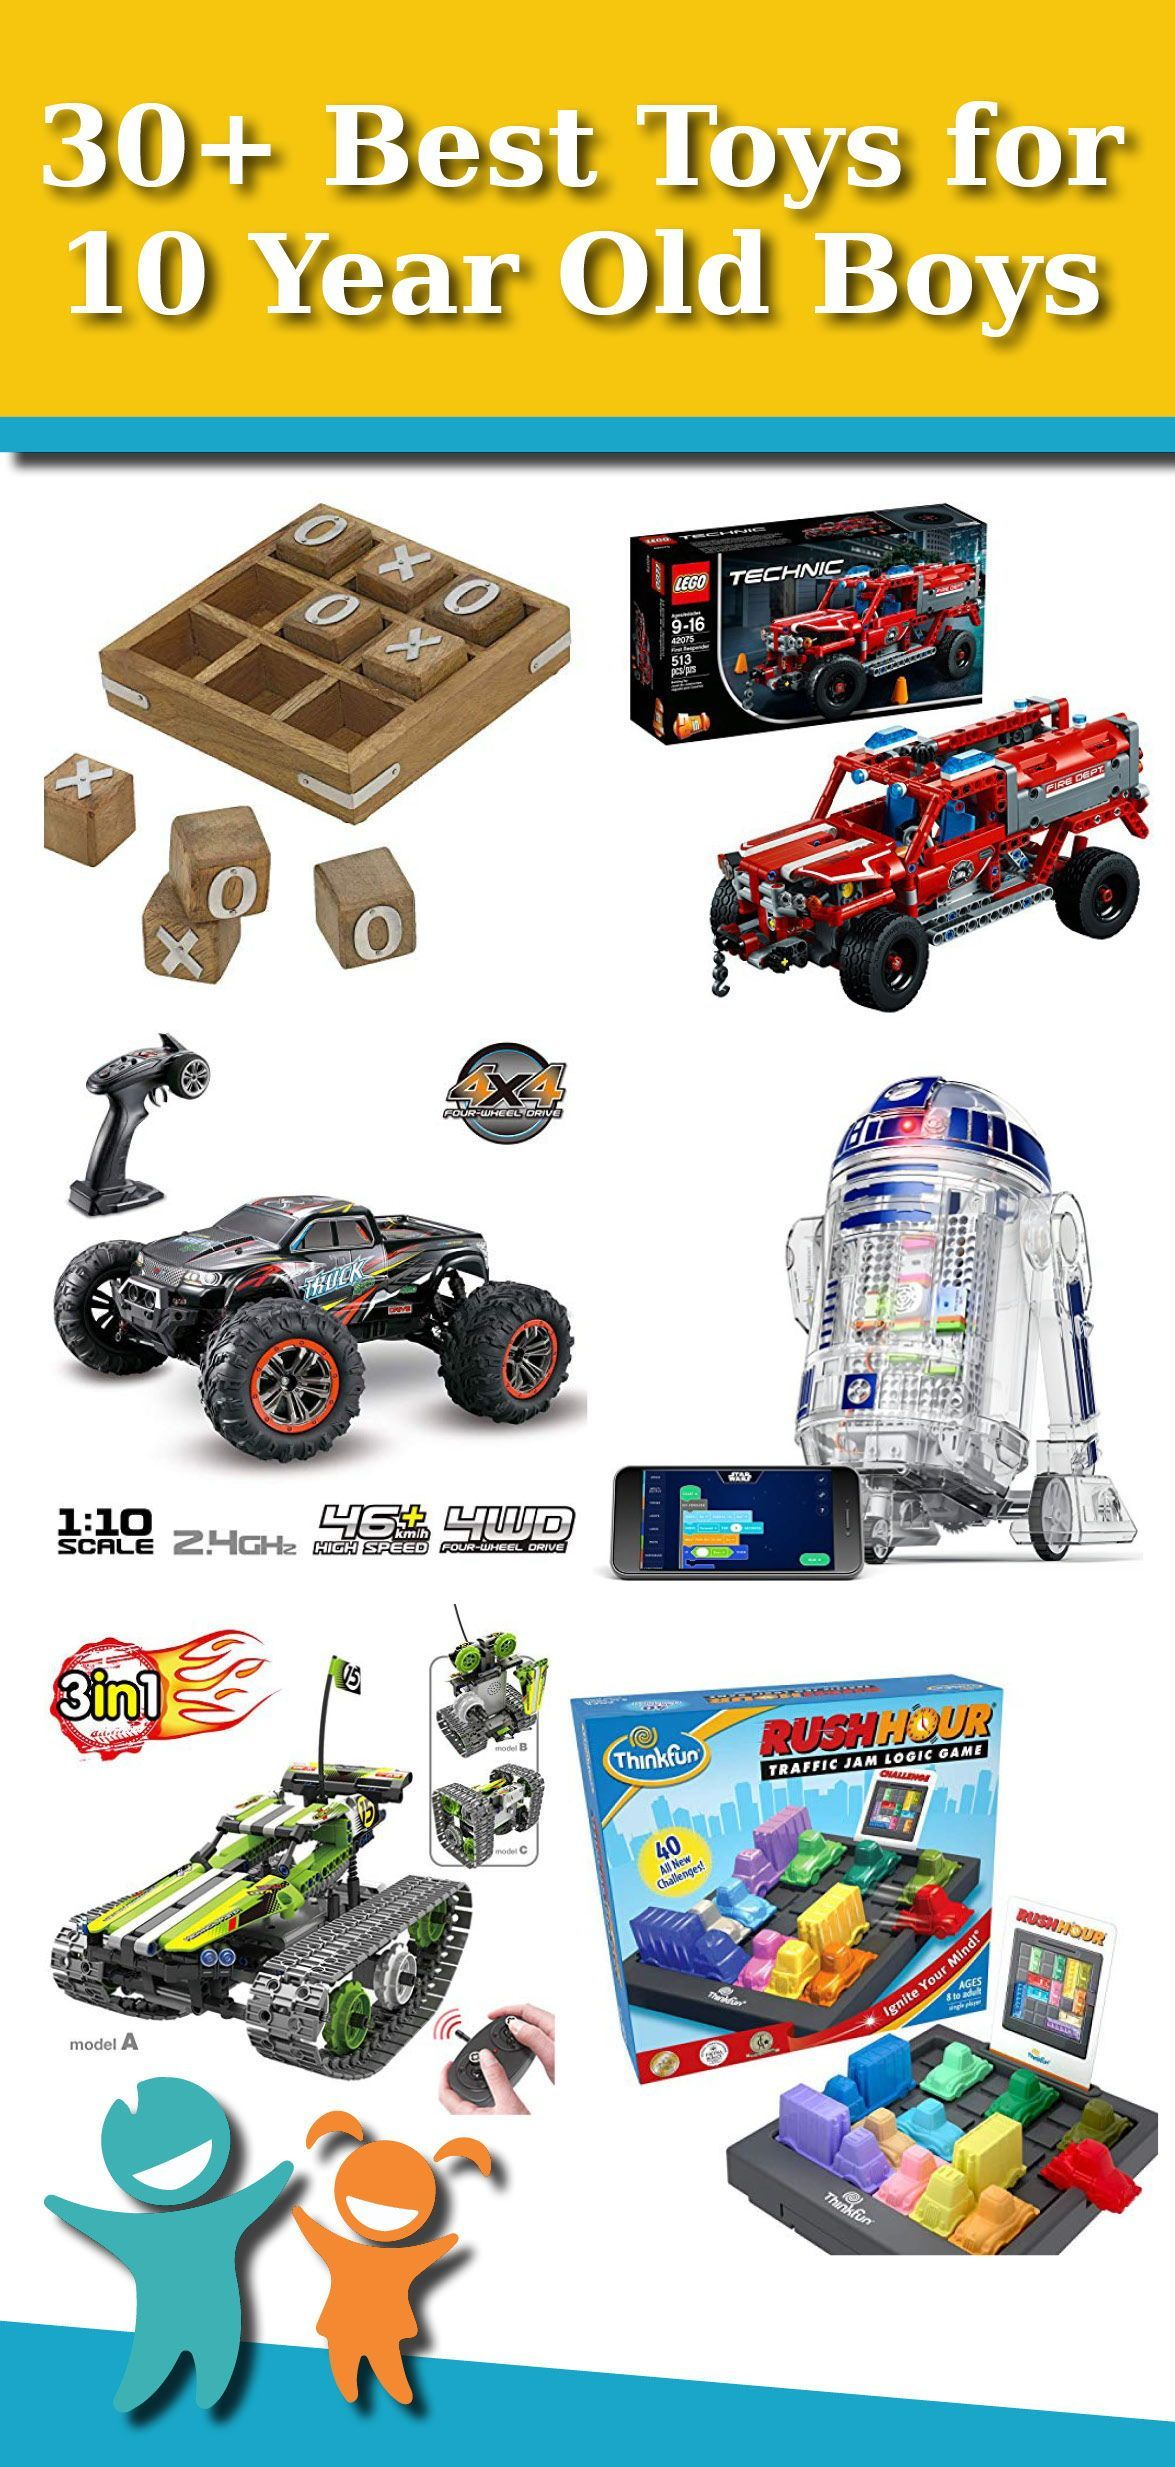 Over 30 Great Gifts Your 10 Year Old Boy Will Love In 2020 Christmas Gifts For Boys 10 Year Old Boy 10 Year Old Gifts